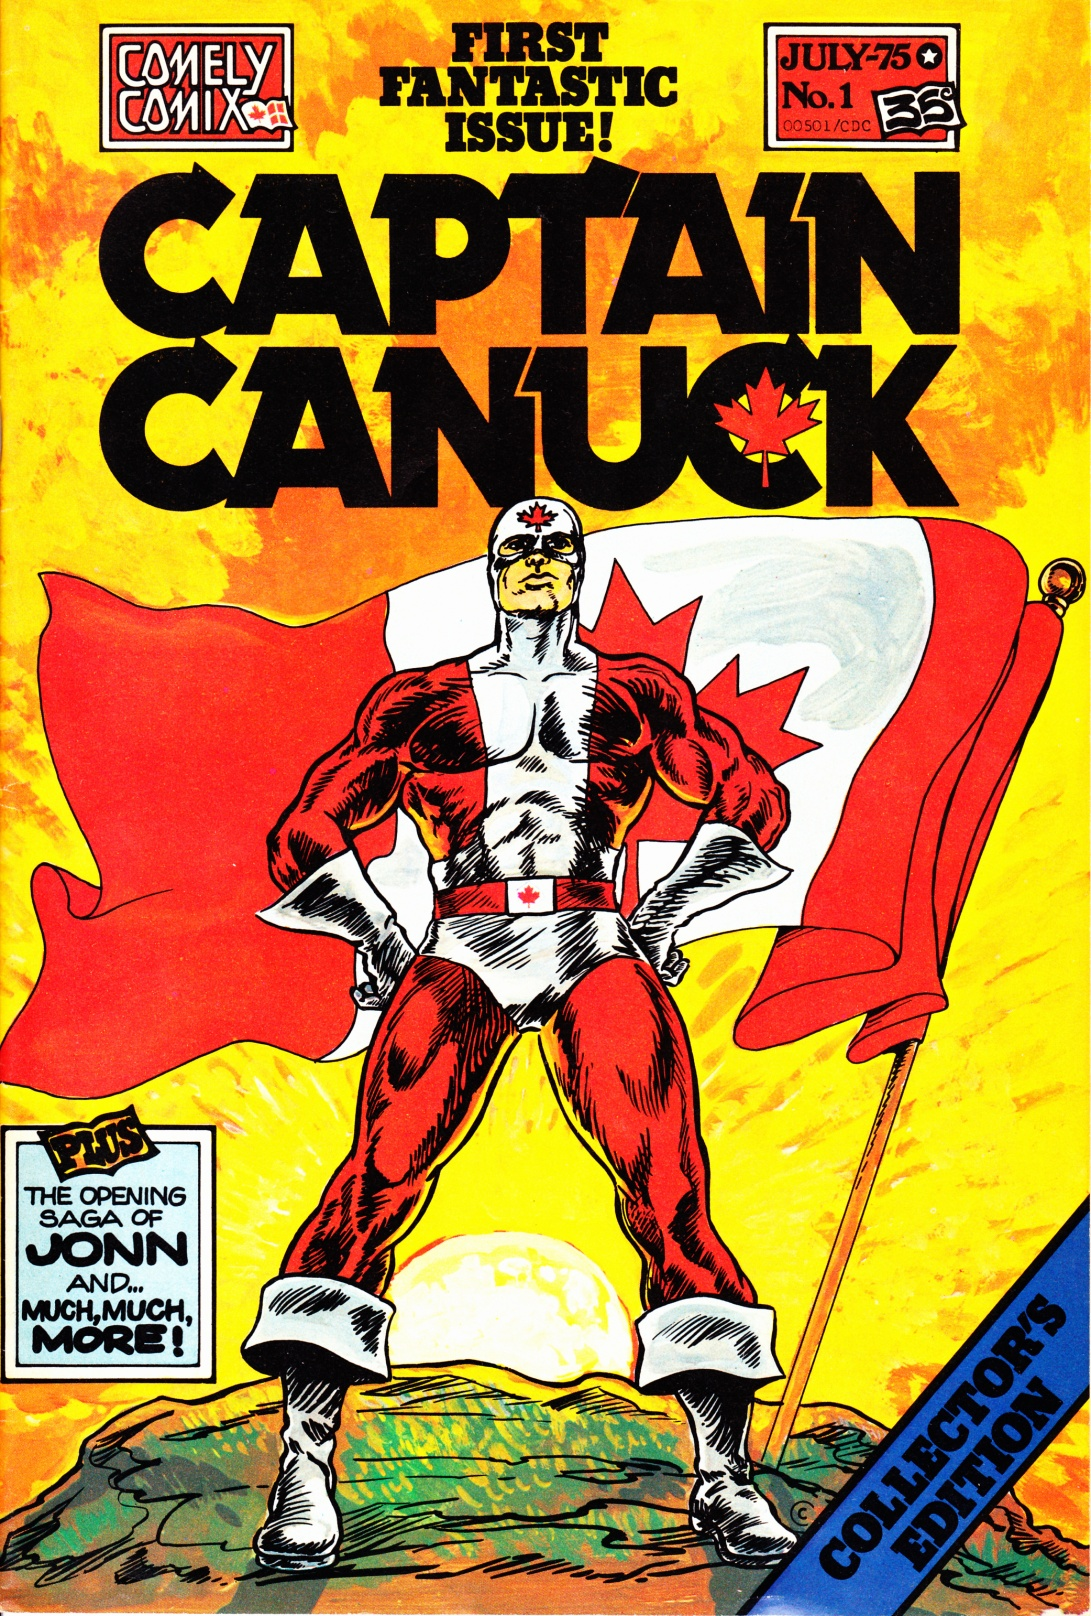 C:\Users\Robert\Documents\CARTOONING ILLUSTRATION ANIMATION\IMAGE CARTOON\IMAGE CARTOON C\CAPT CANUCK, Captain Canuck   1, July 1975, fc.jpg